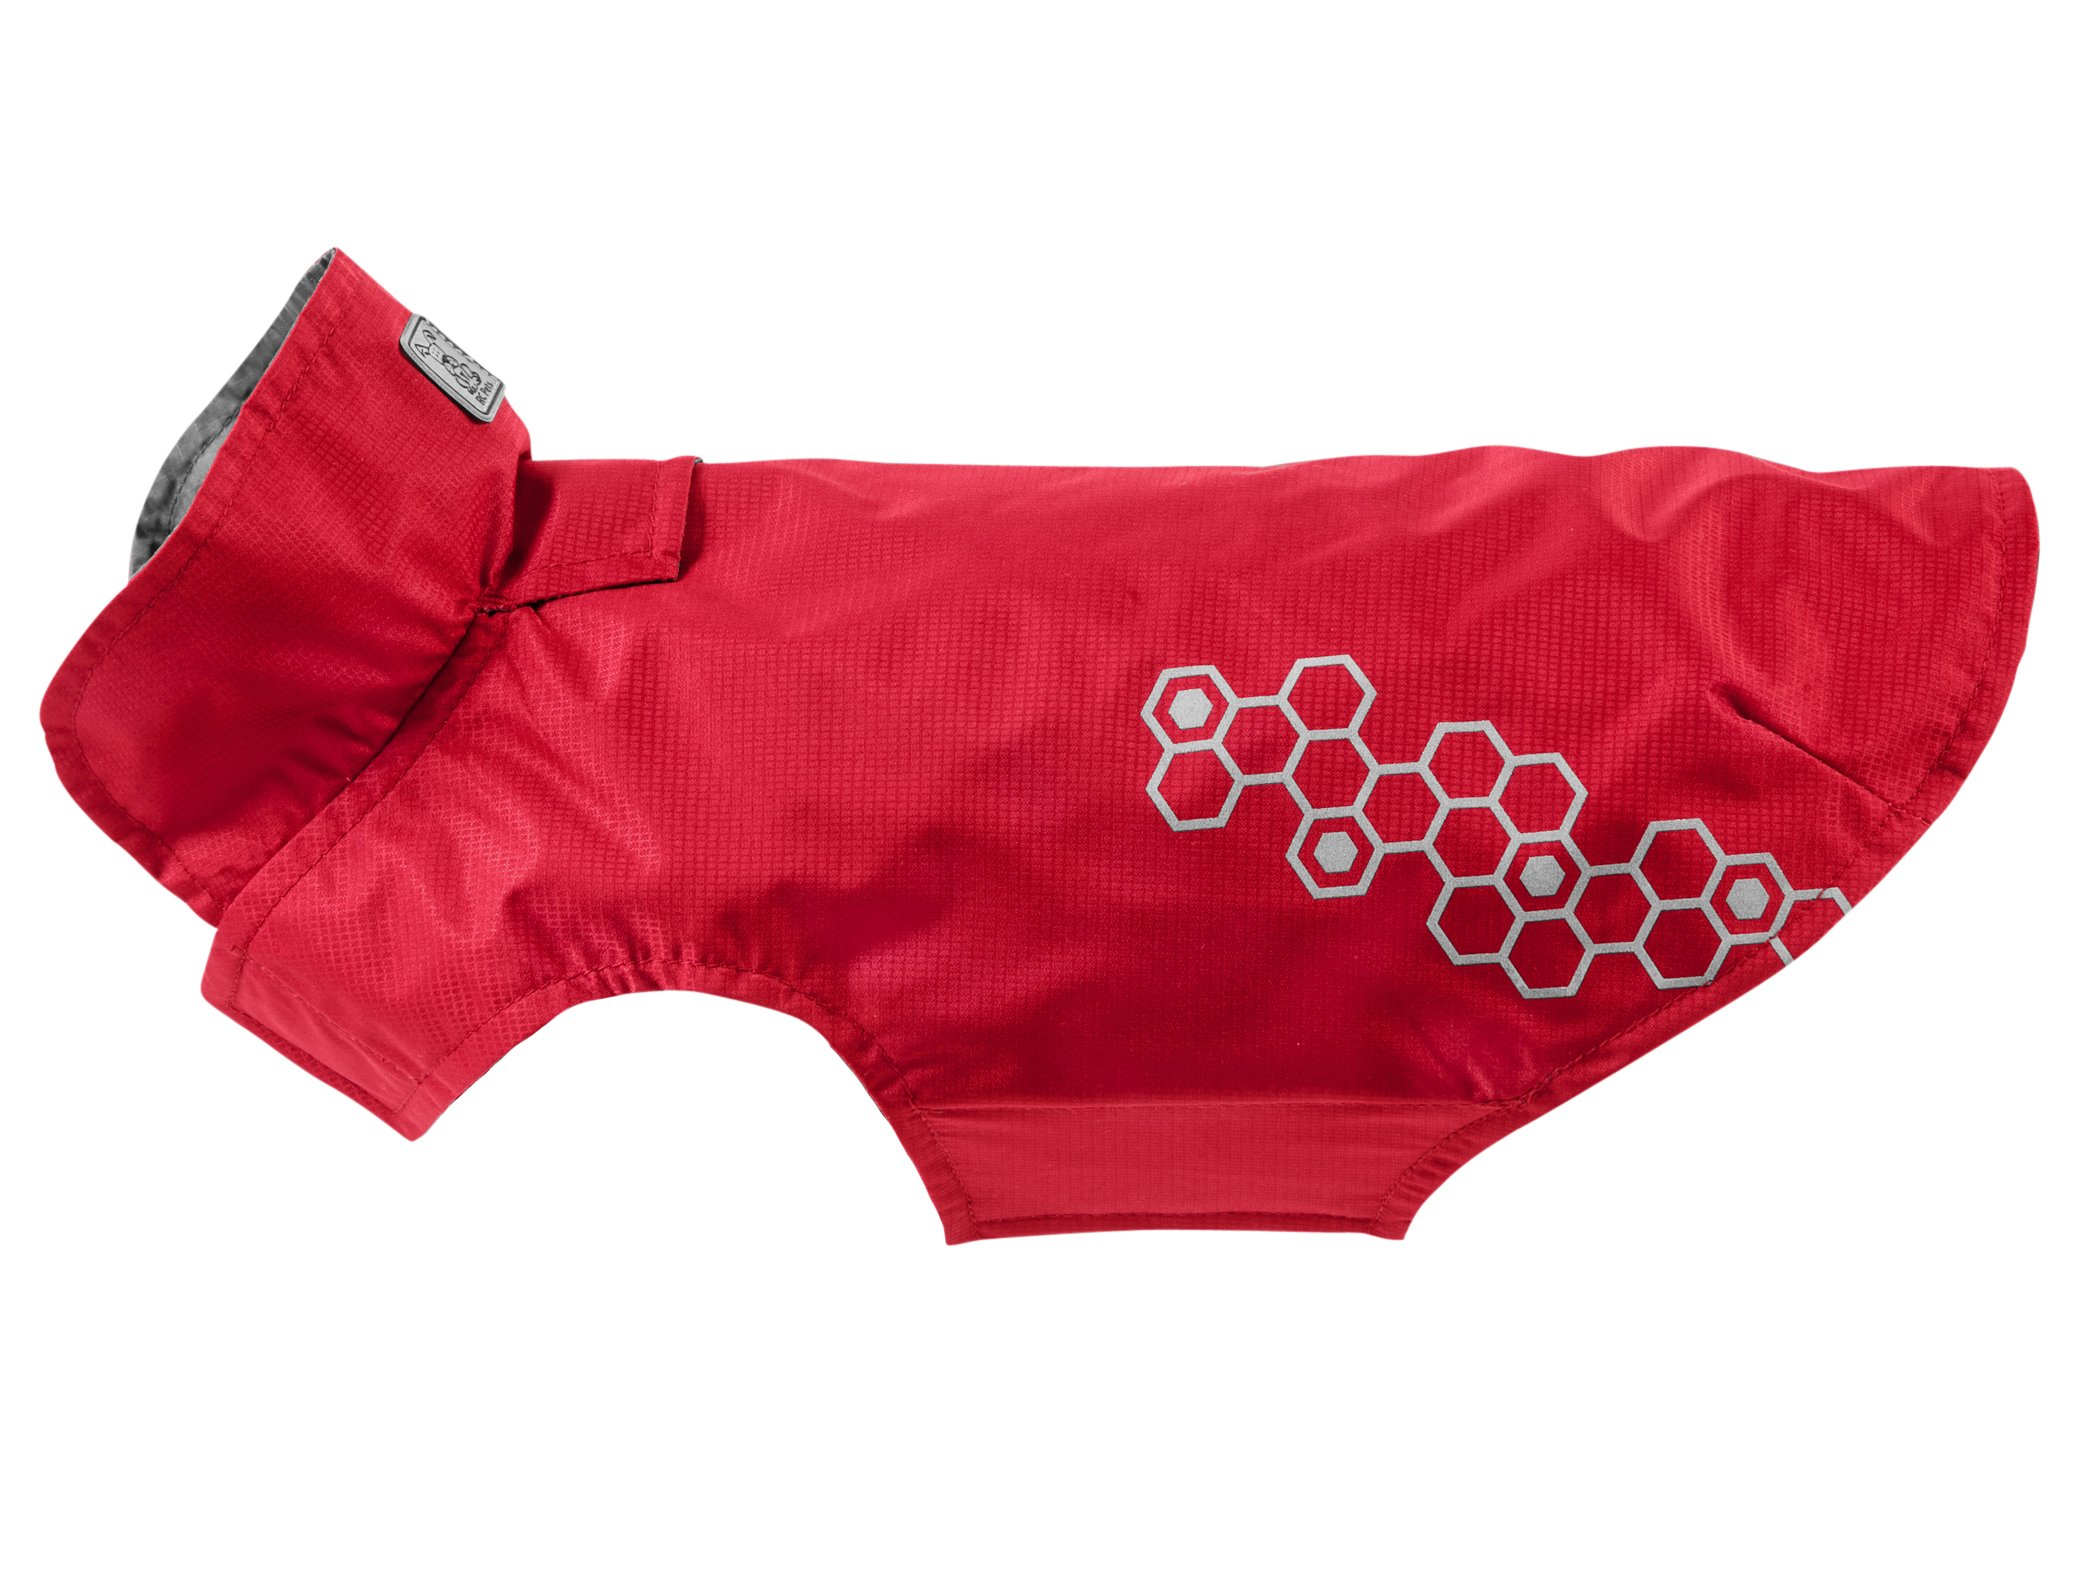 RC Pet Products Venture Shell Reflective, Water Resistant Dog Coat, Size 24, Crimson